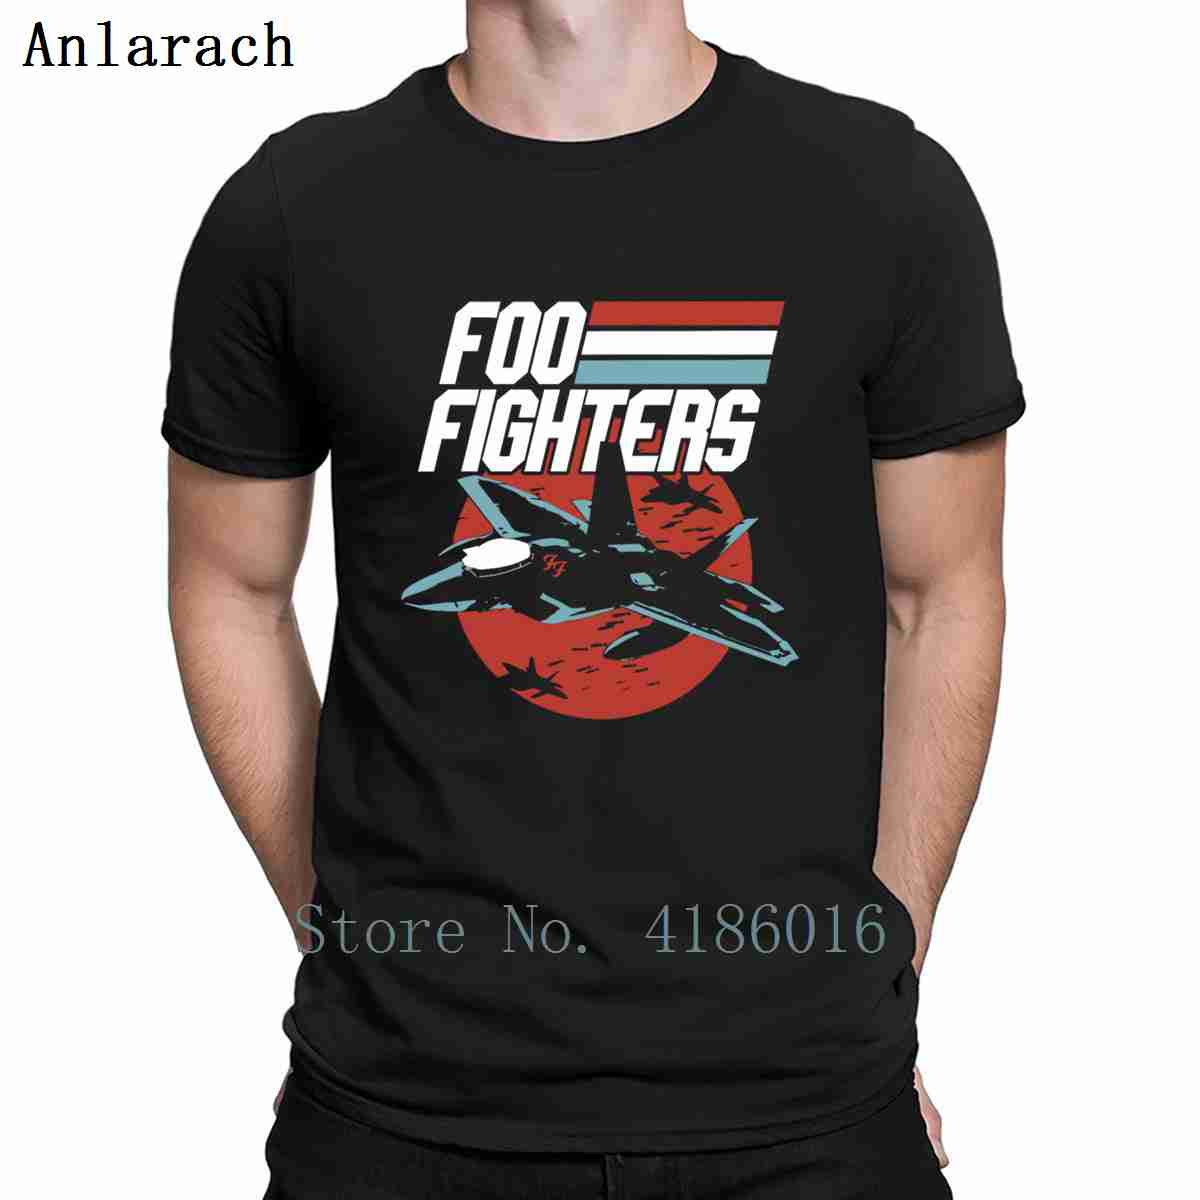 Foo Fighters Fighter Jet T Shirt Cotton Gift Size S-5xl Character Family Fashion Clothes Summer Shirt image